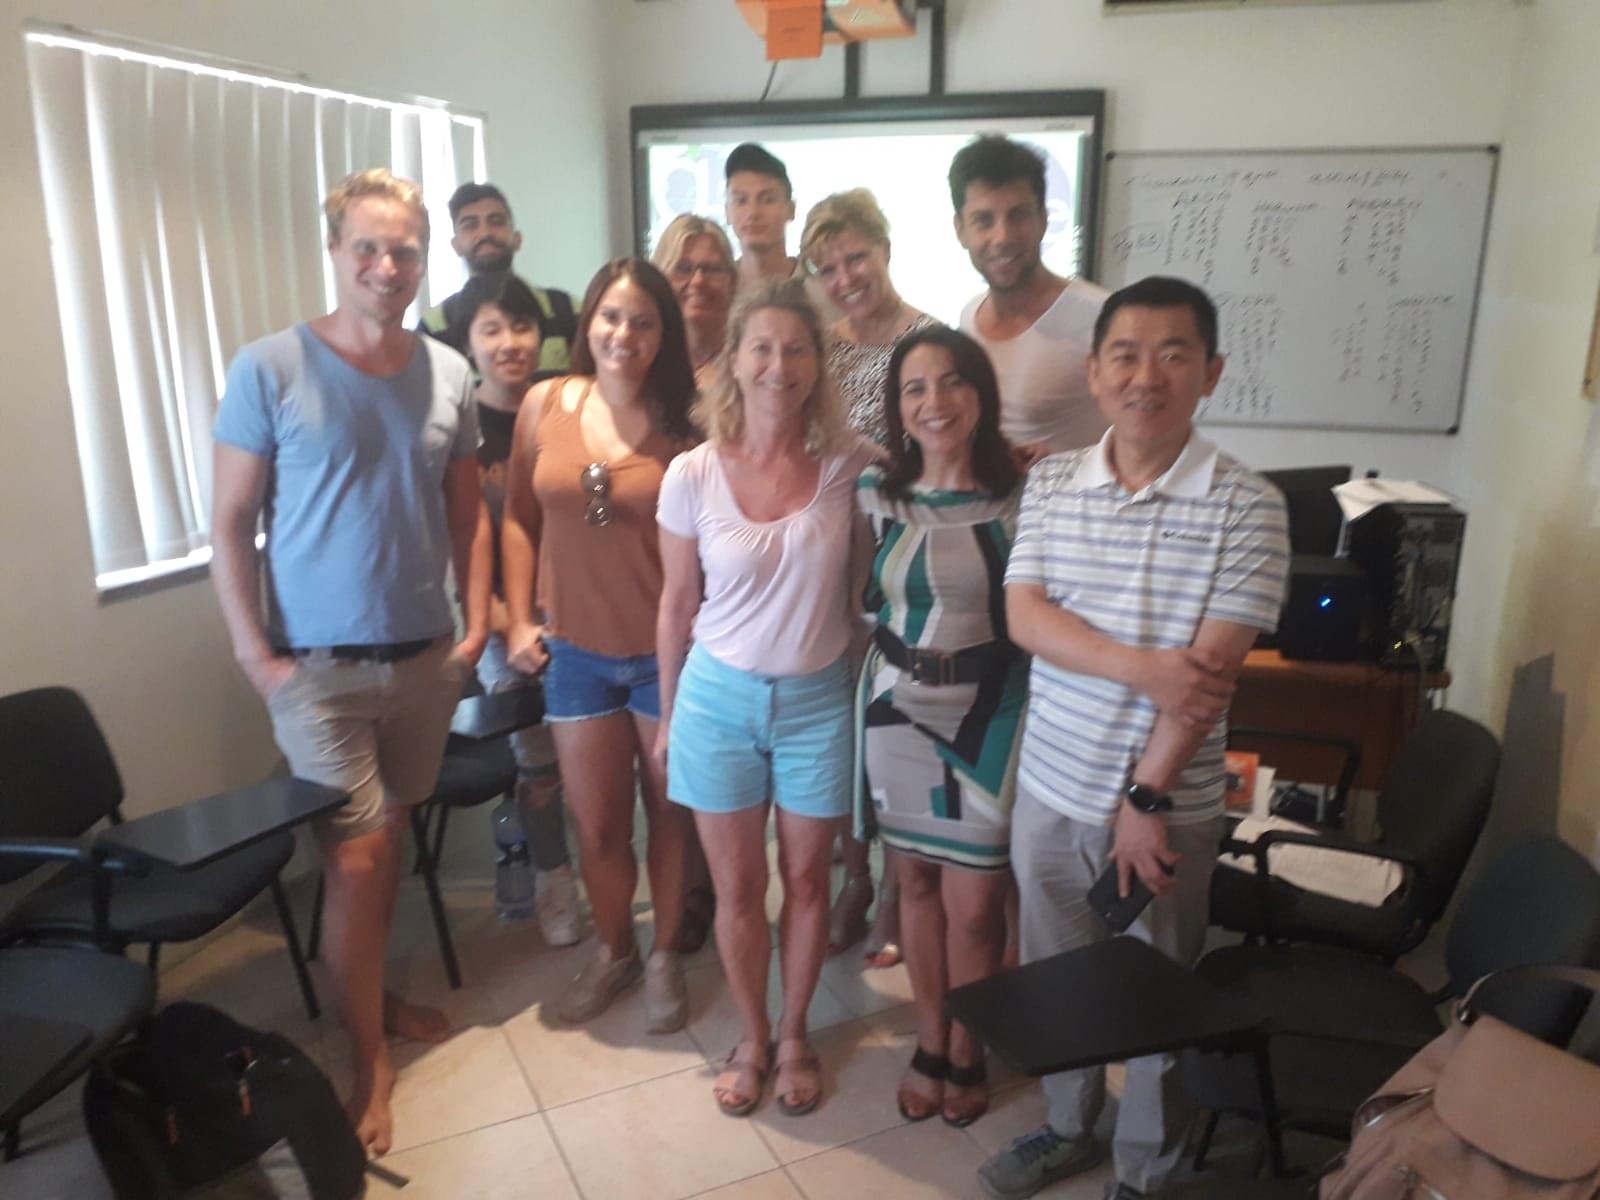 GSE Gateway School of English International Adult Students learning English vacanza studio sprachreisen sejours linguistiques intercambio Malta